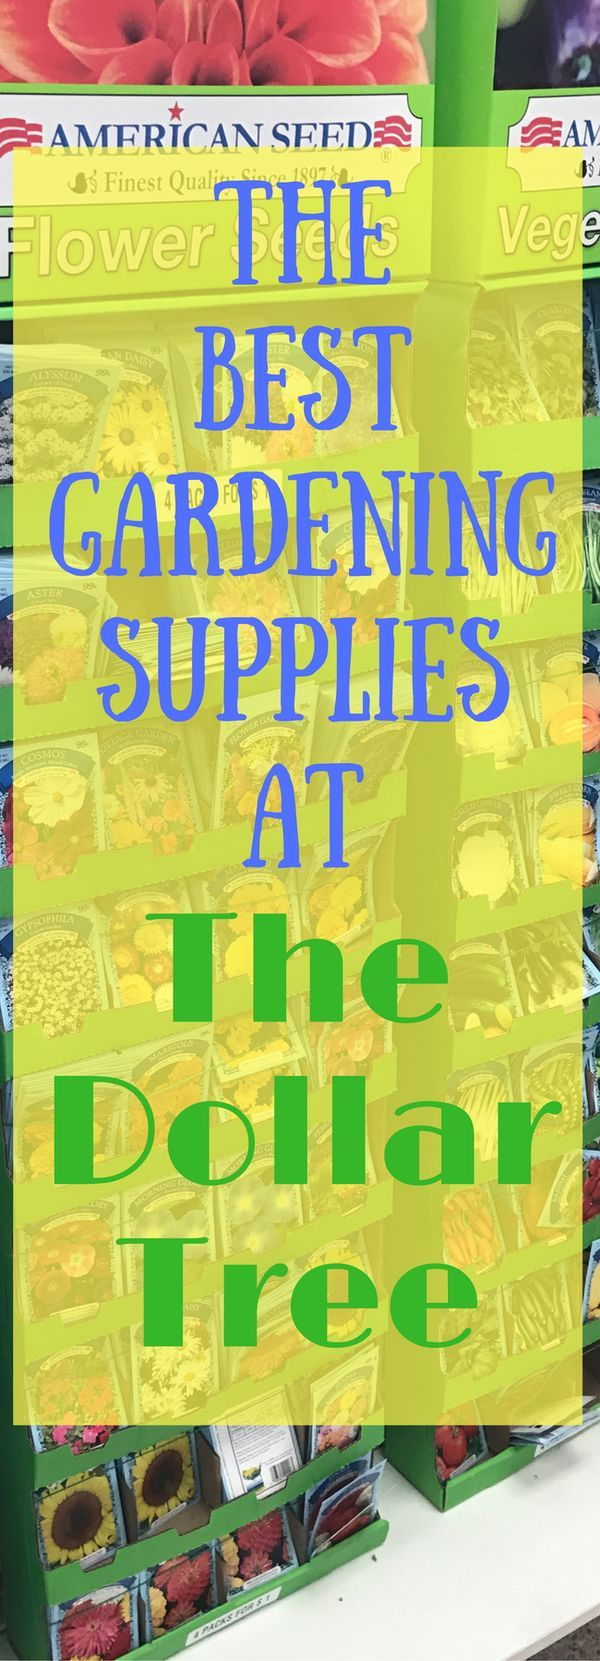 No need to spend a lot of money on gardening supplies! Use these tips to help find the best supplies at The Dollar Tree for your garden project!